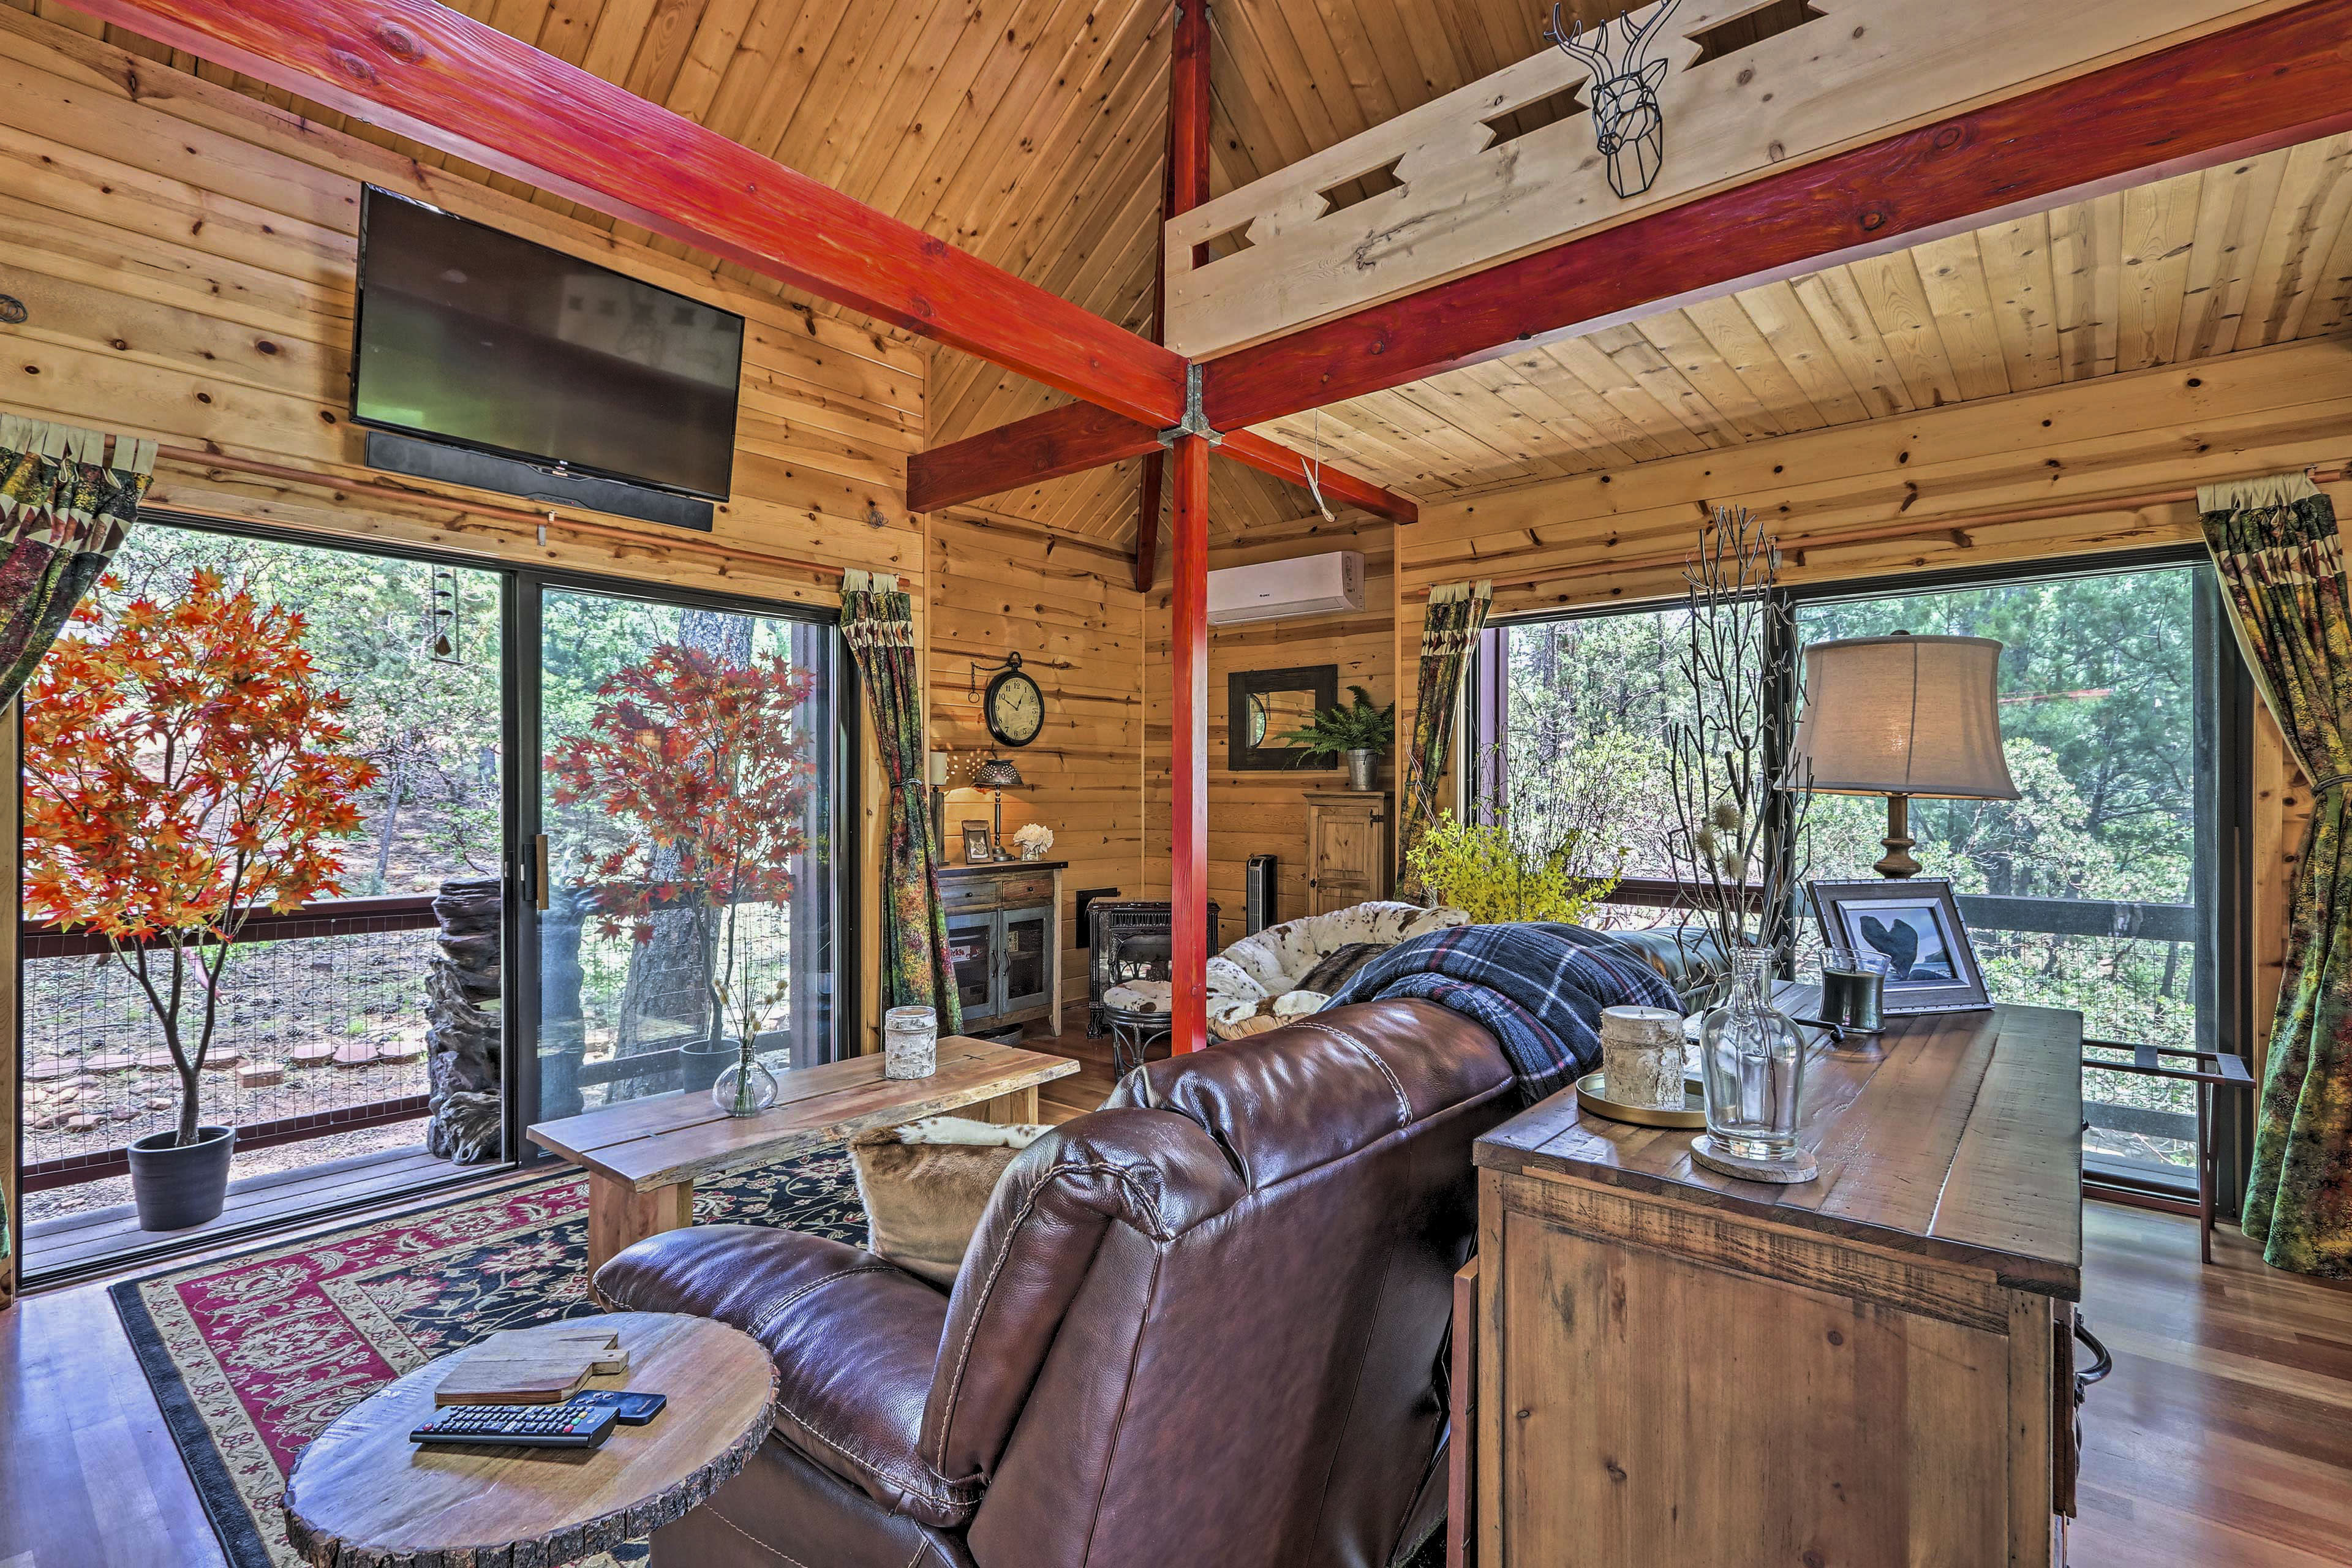 Strawberry Vacation Rental Studio Cabin / 1BA / 650 Sq Ft / 2 Guests